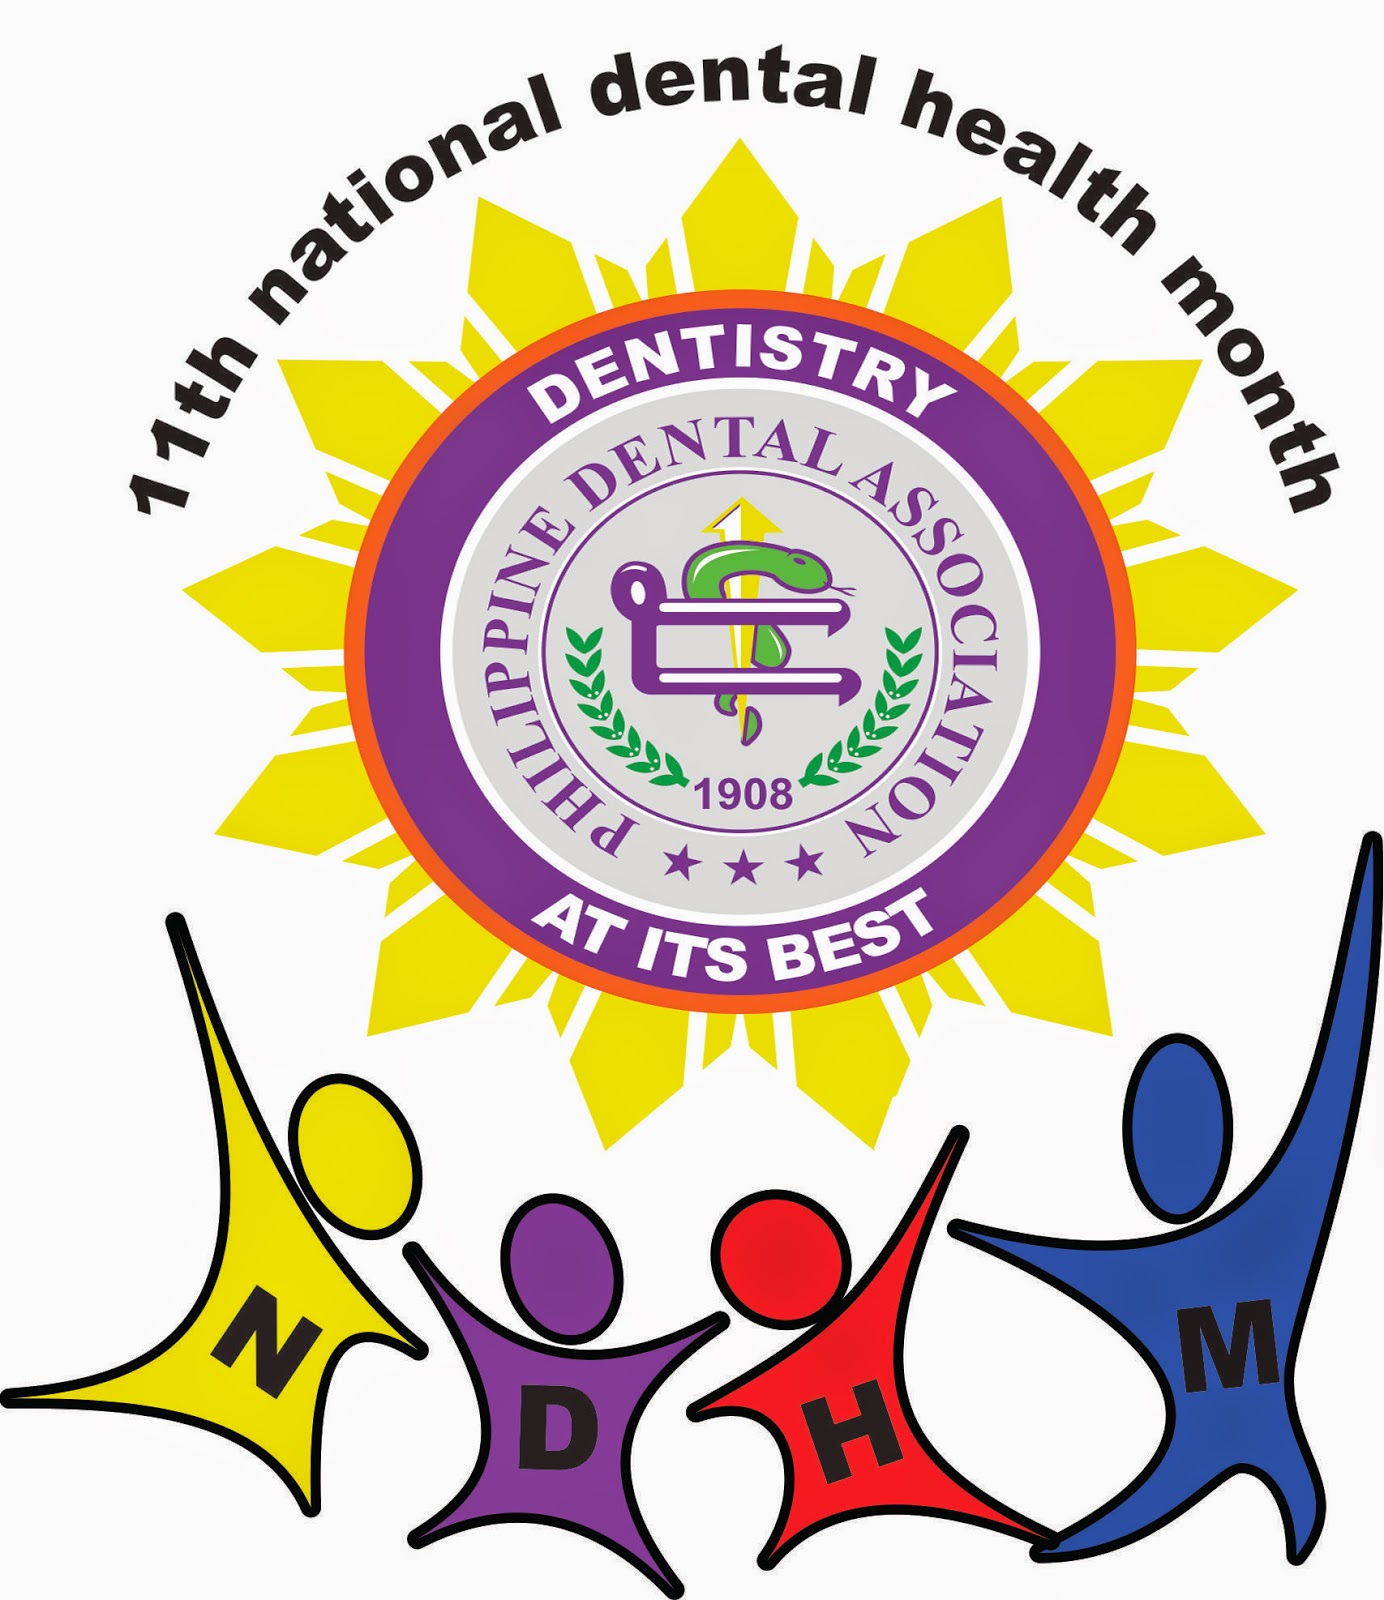 PDA - NDHM ON THE SPOT POSTER MAKING CONTEST 2015 ~ Pinoydental